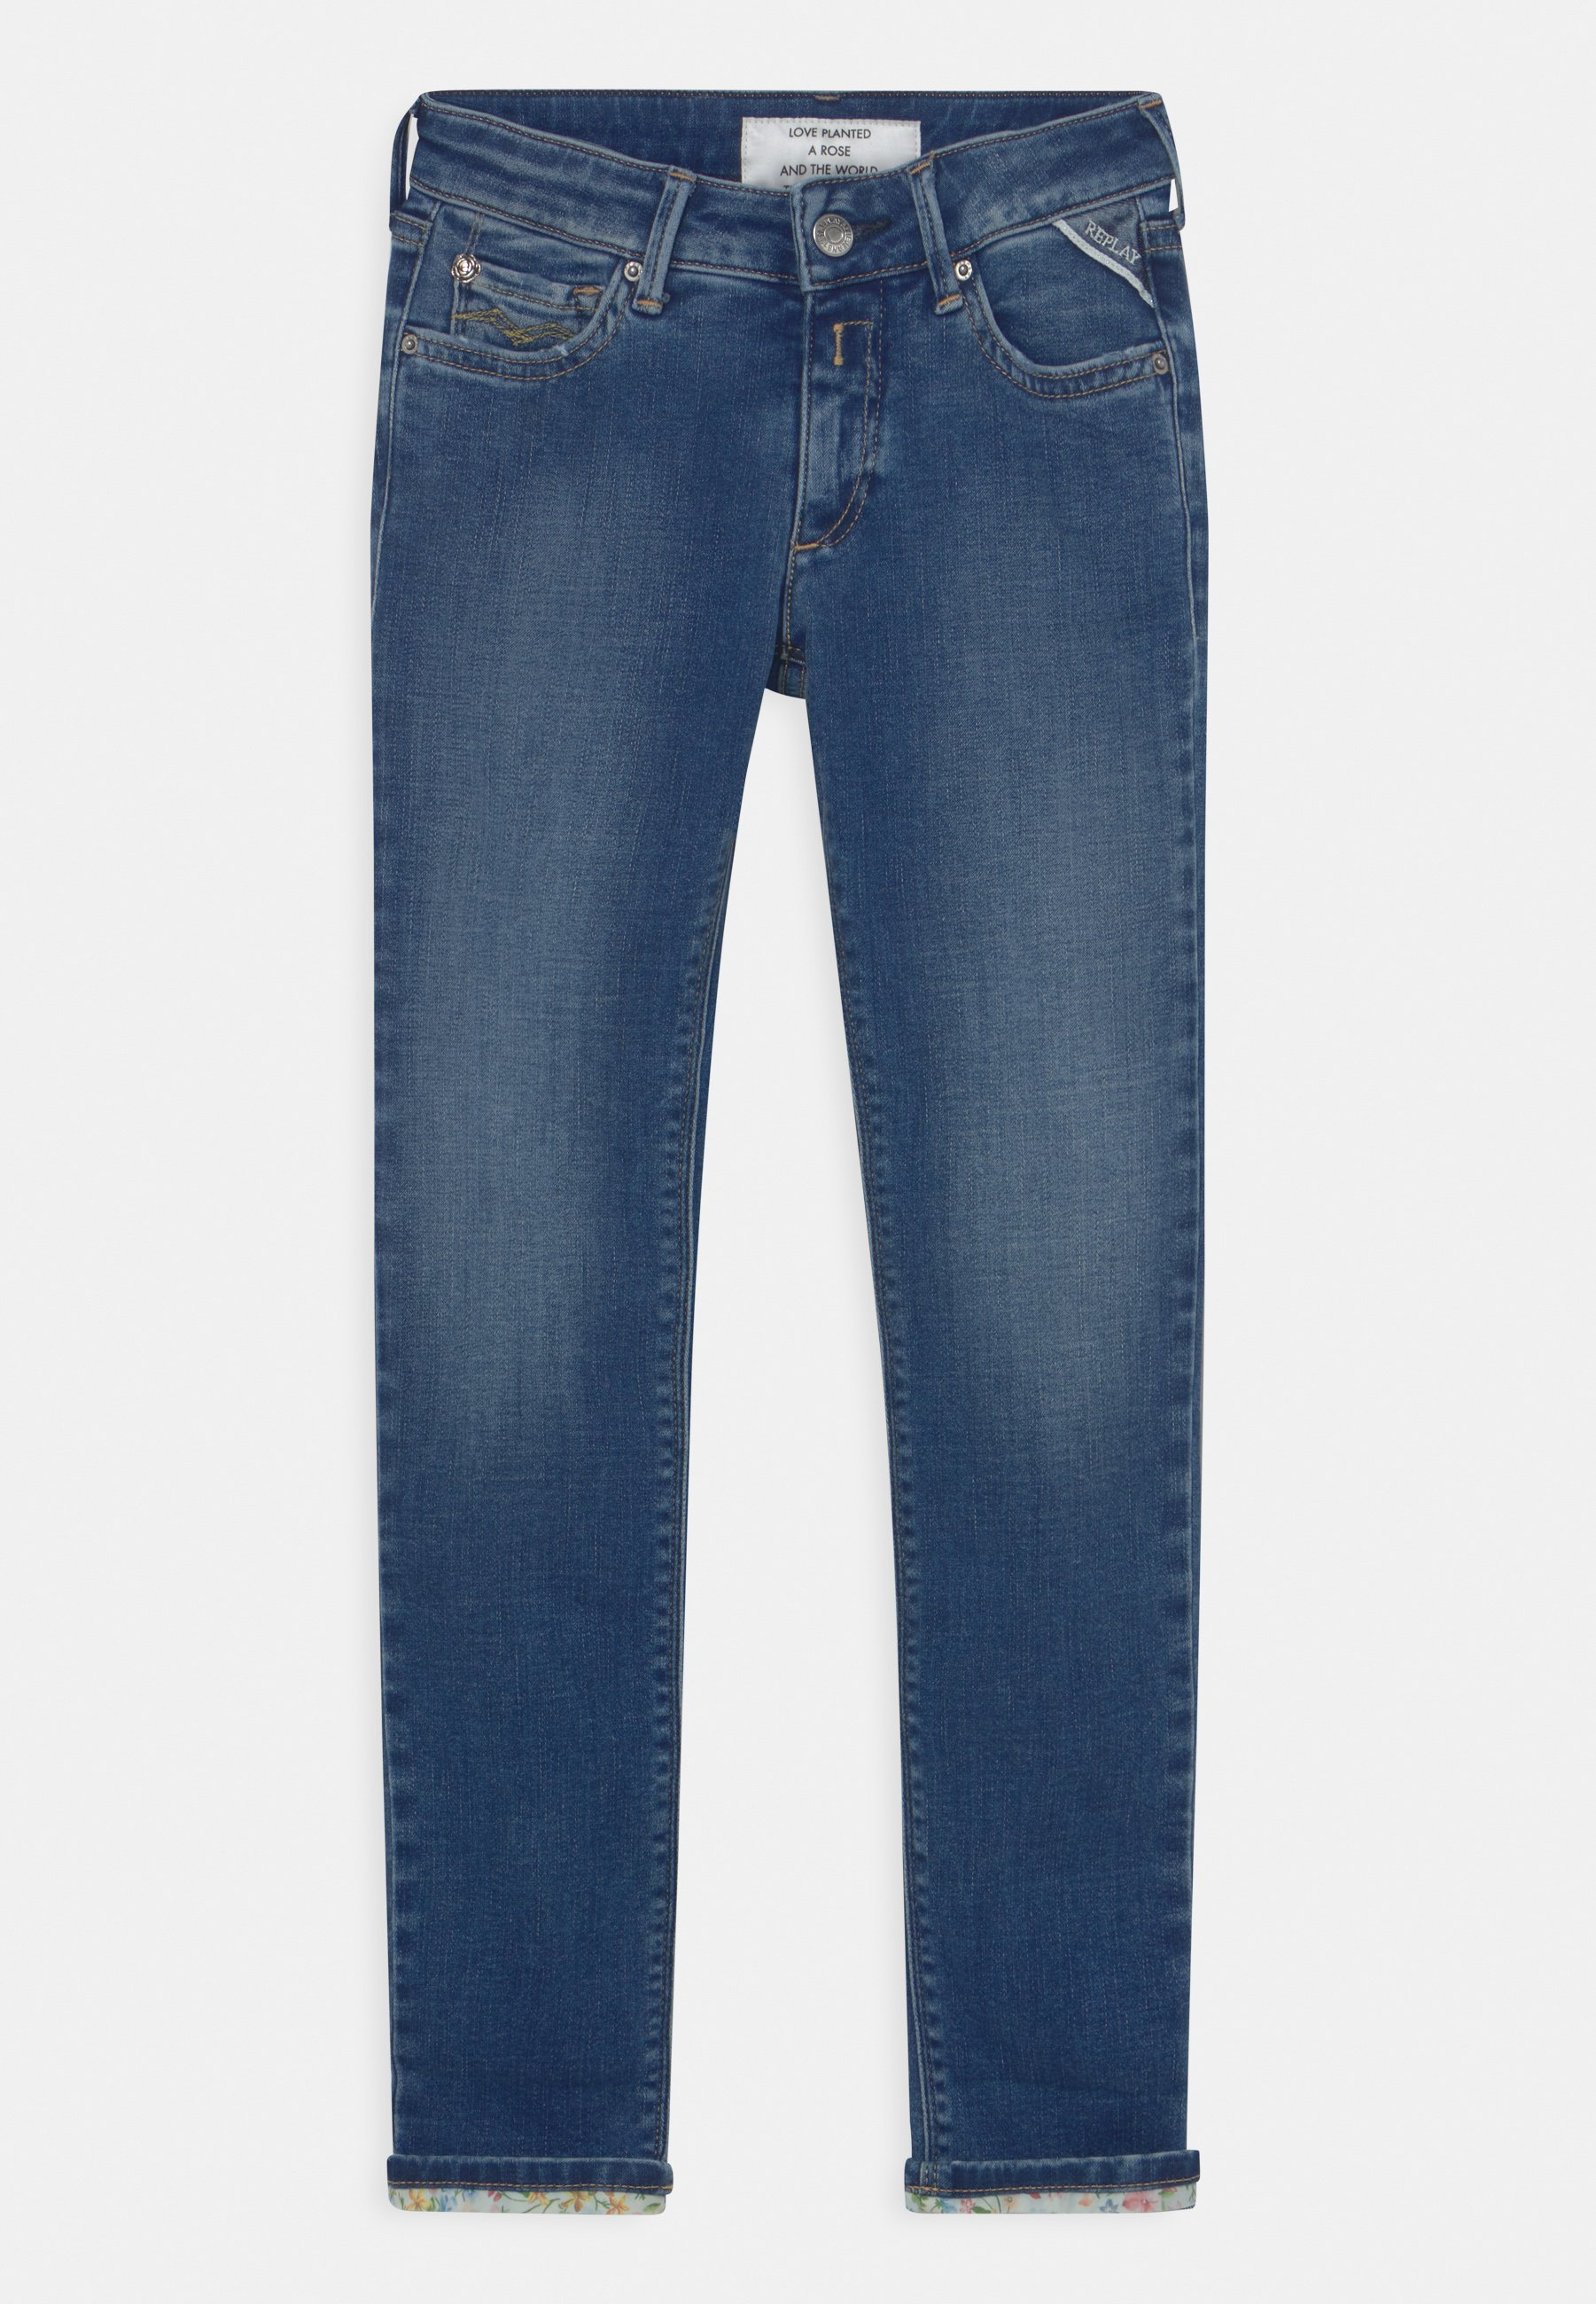 Bambini Jeans Skinny Fit